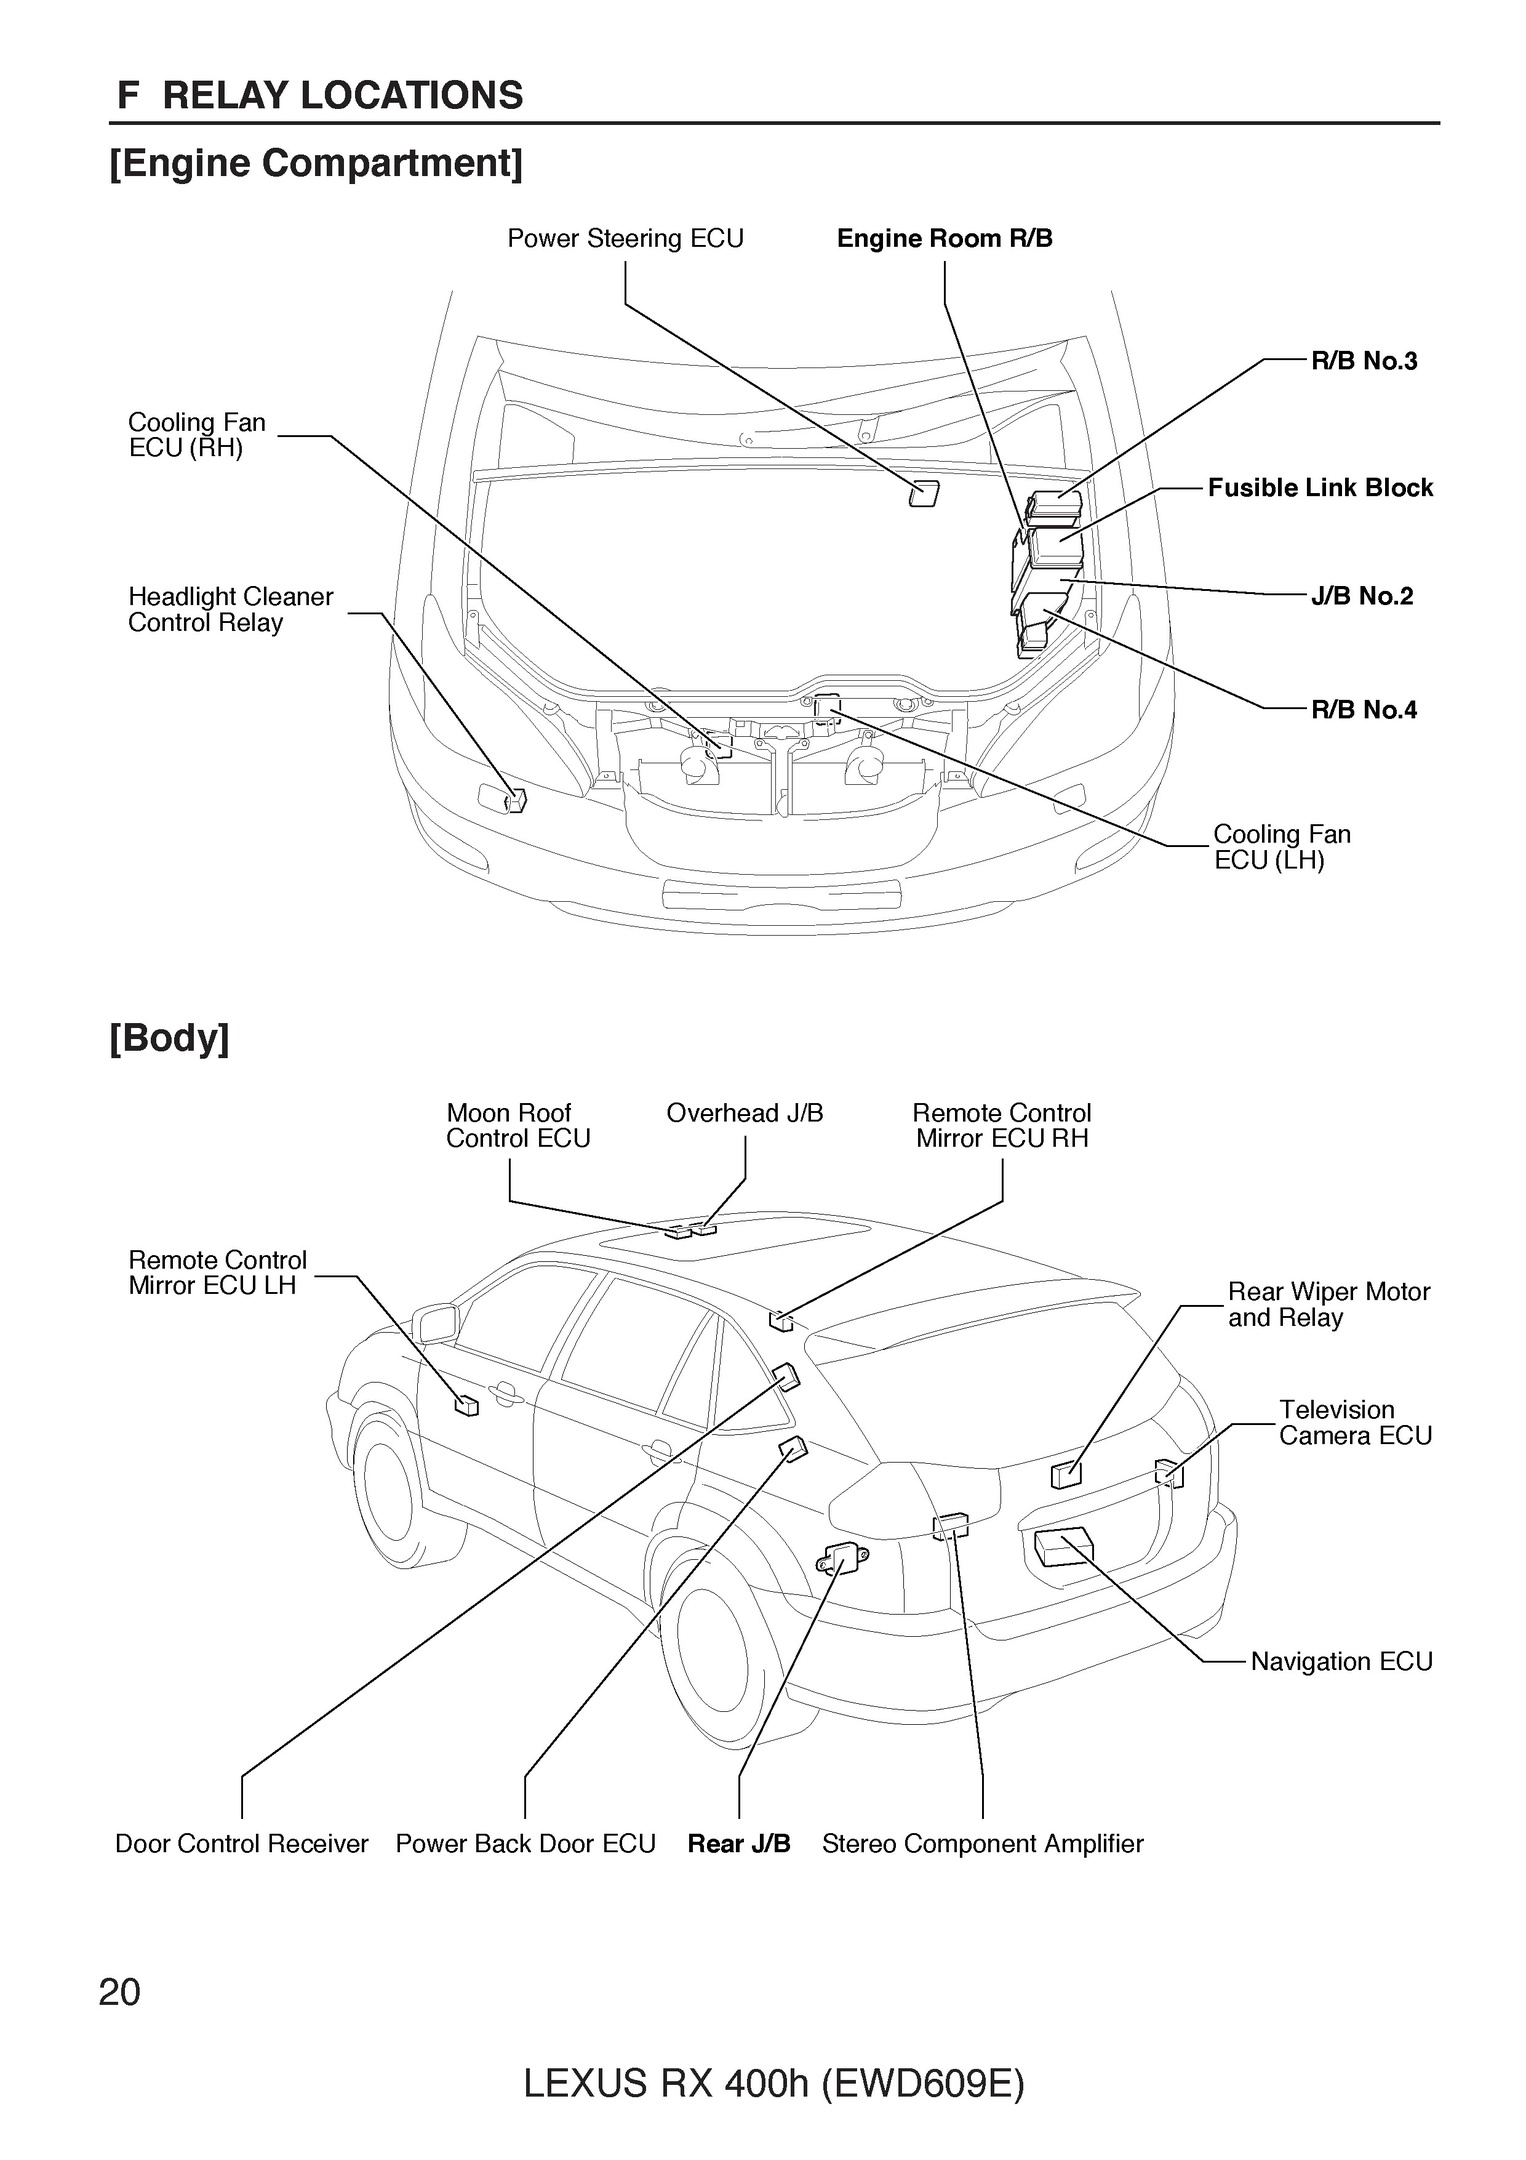 hight resolution of free 2005 lexus rx400h oem electrical wiring diagram rh sellfy com 2006 lexus rx400h wiring diagram